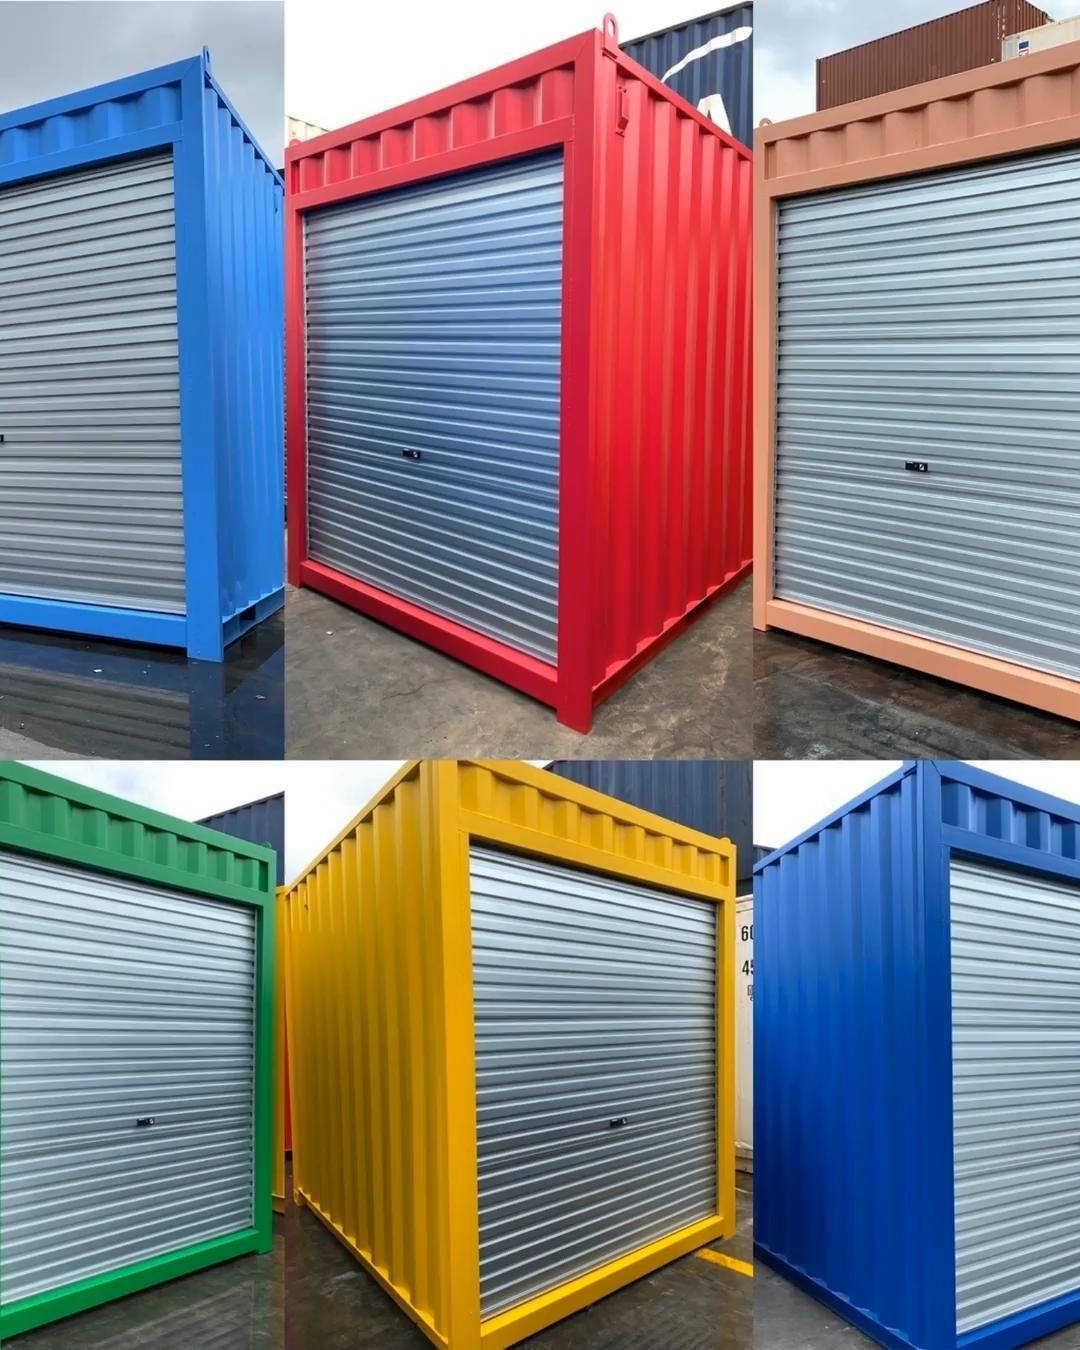 10ft High Cube Shipping Container Project Check Out The Bright Colours On A Shipping Container Project Fo In 2020 Container House Plans Container House Container Shop